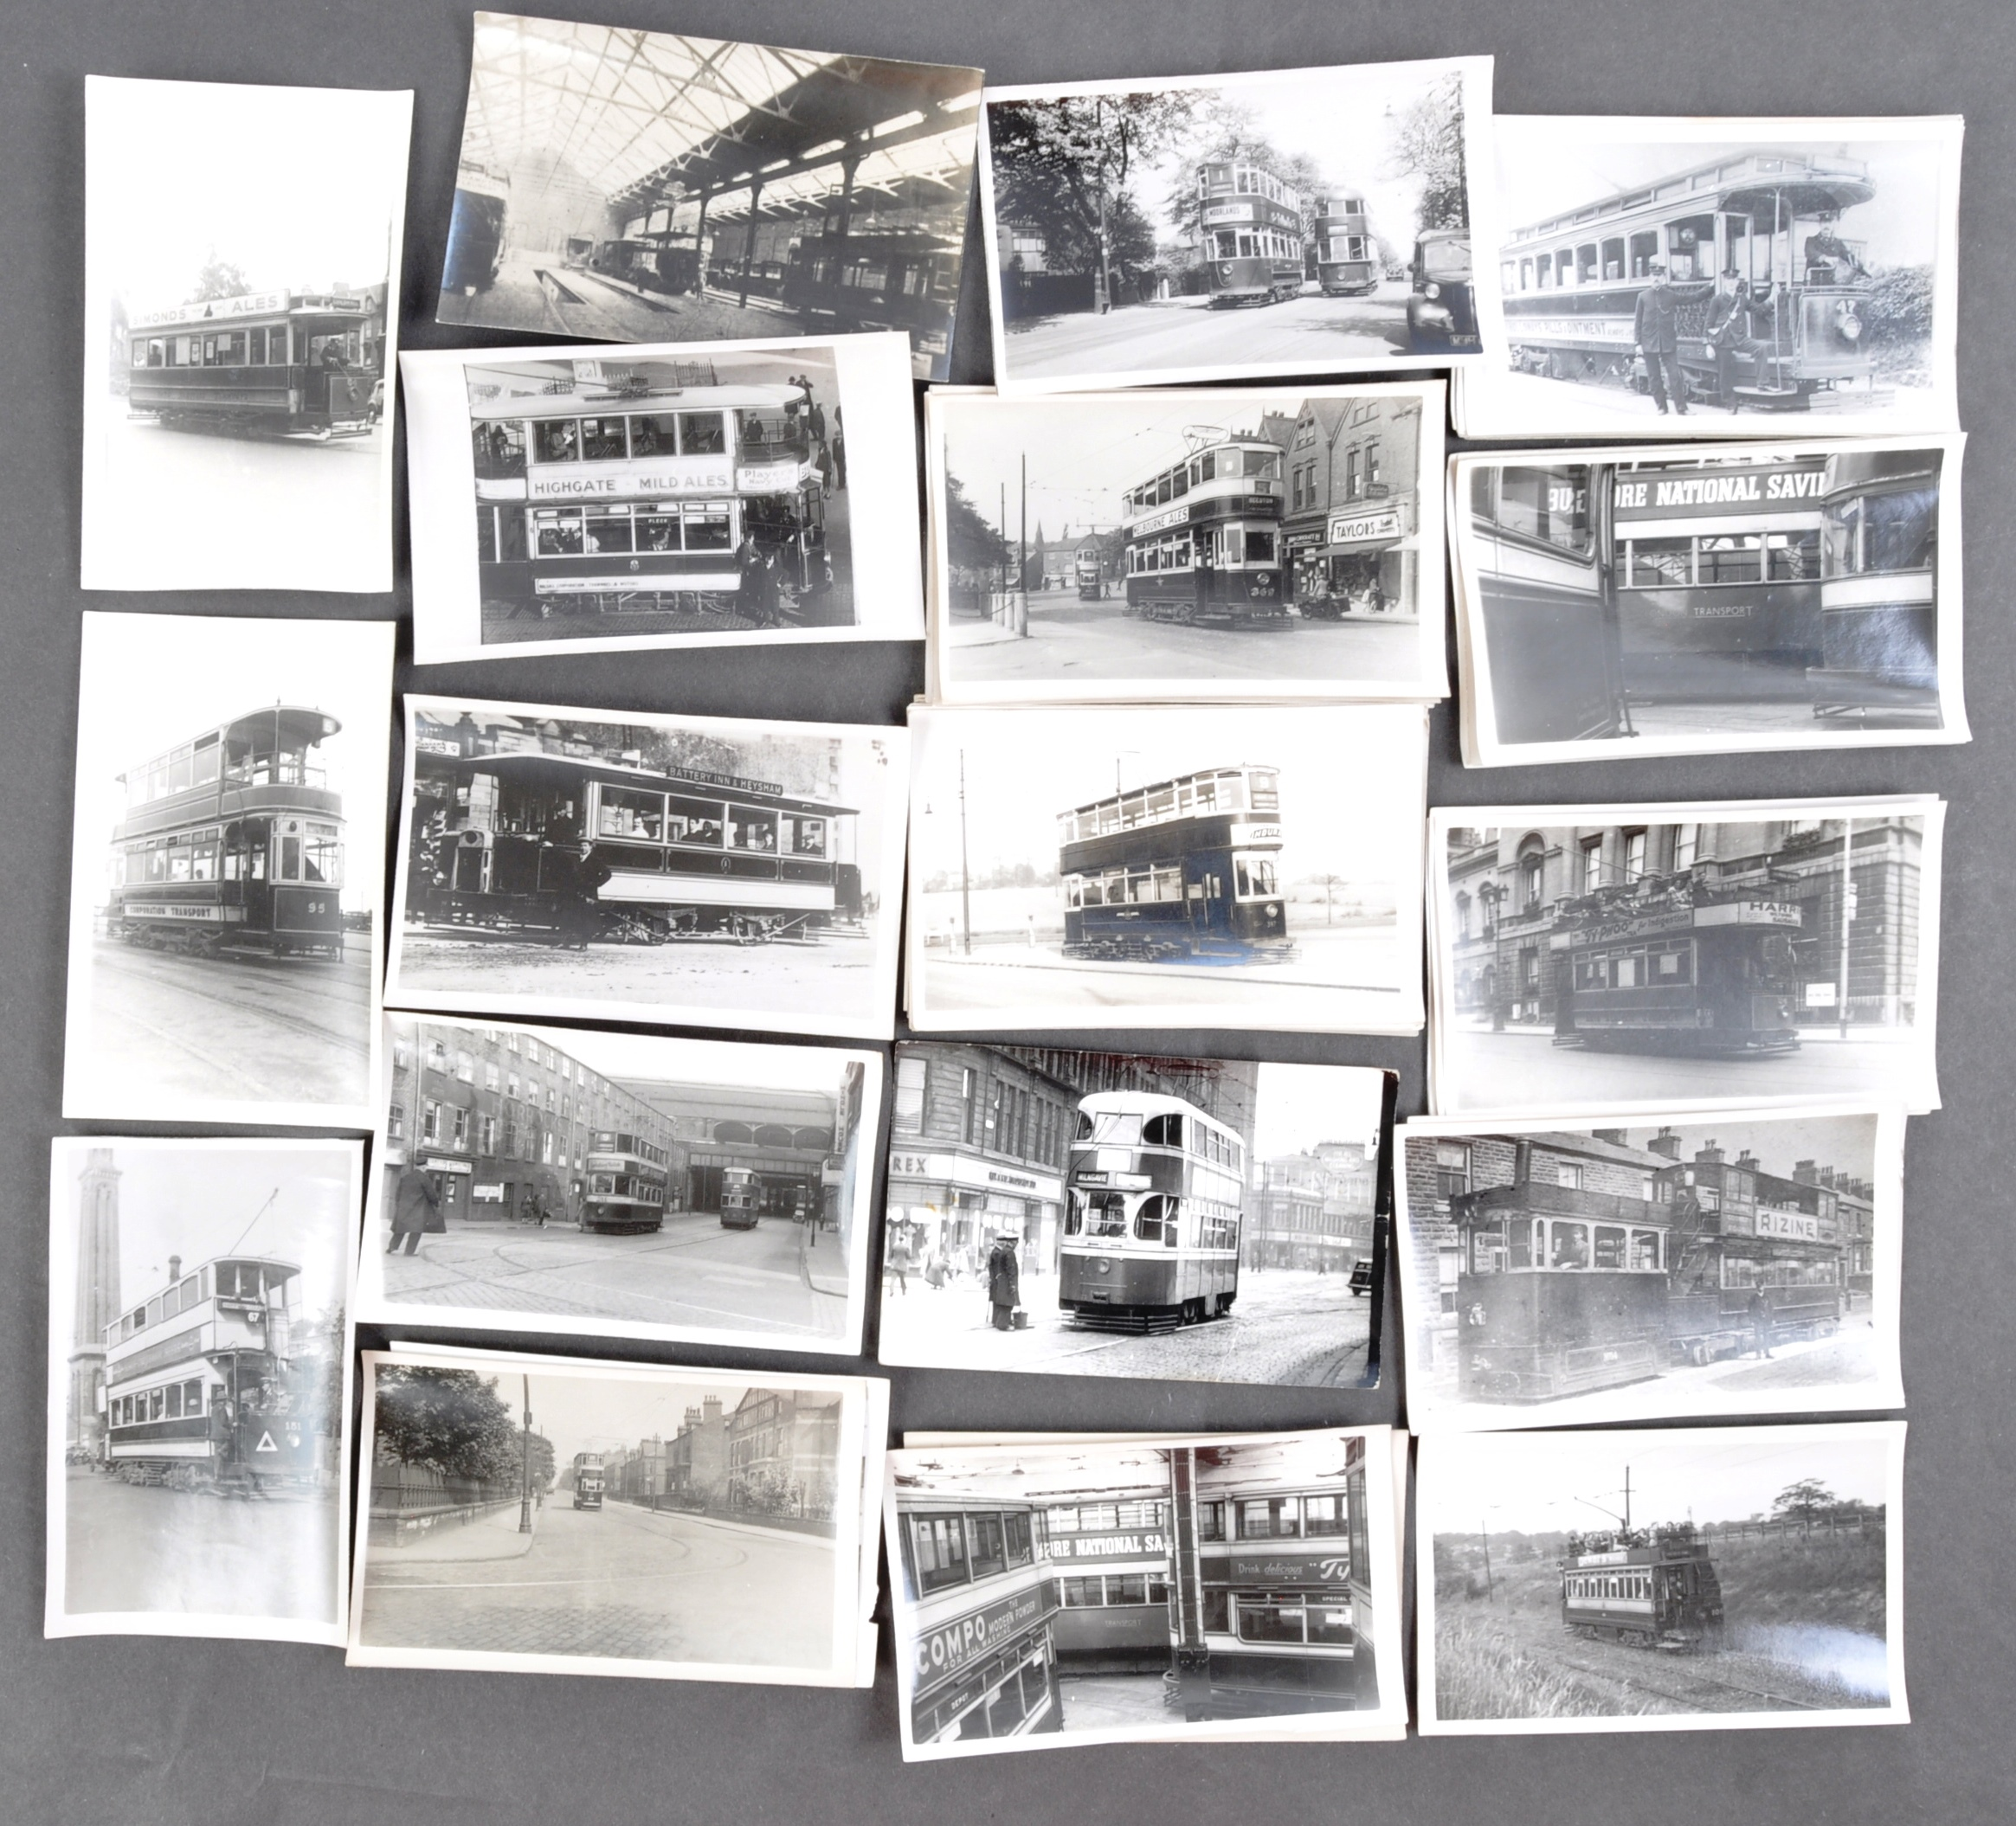 TRAMS & TROLLEY BUSES - LARGE COLLECTION OF BLACK AND WHITE PHOTOS - Image 9 of 9